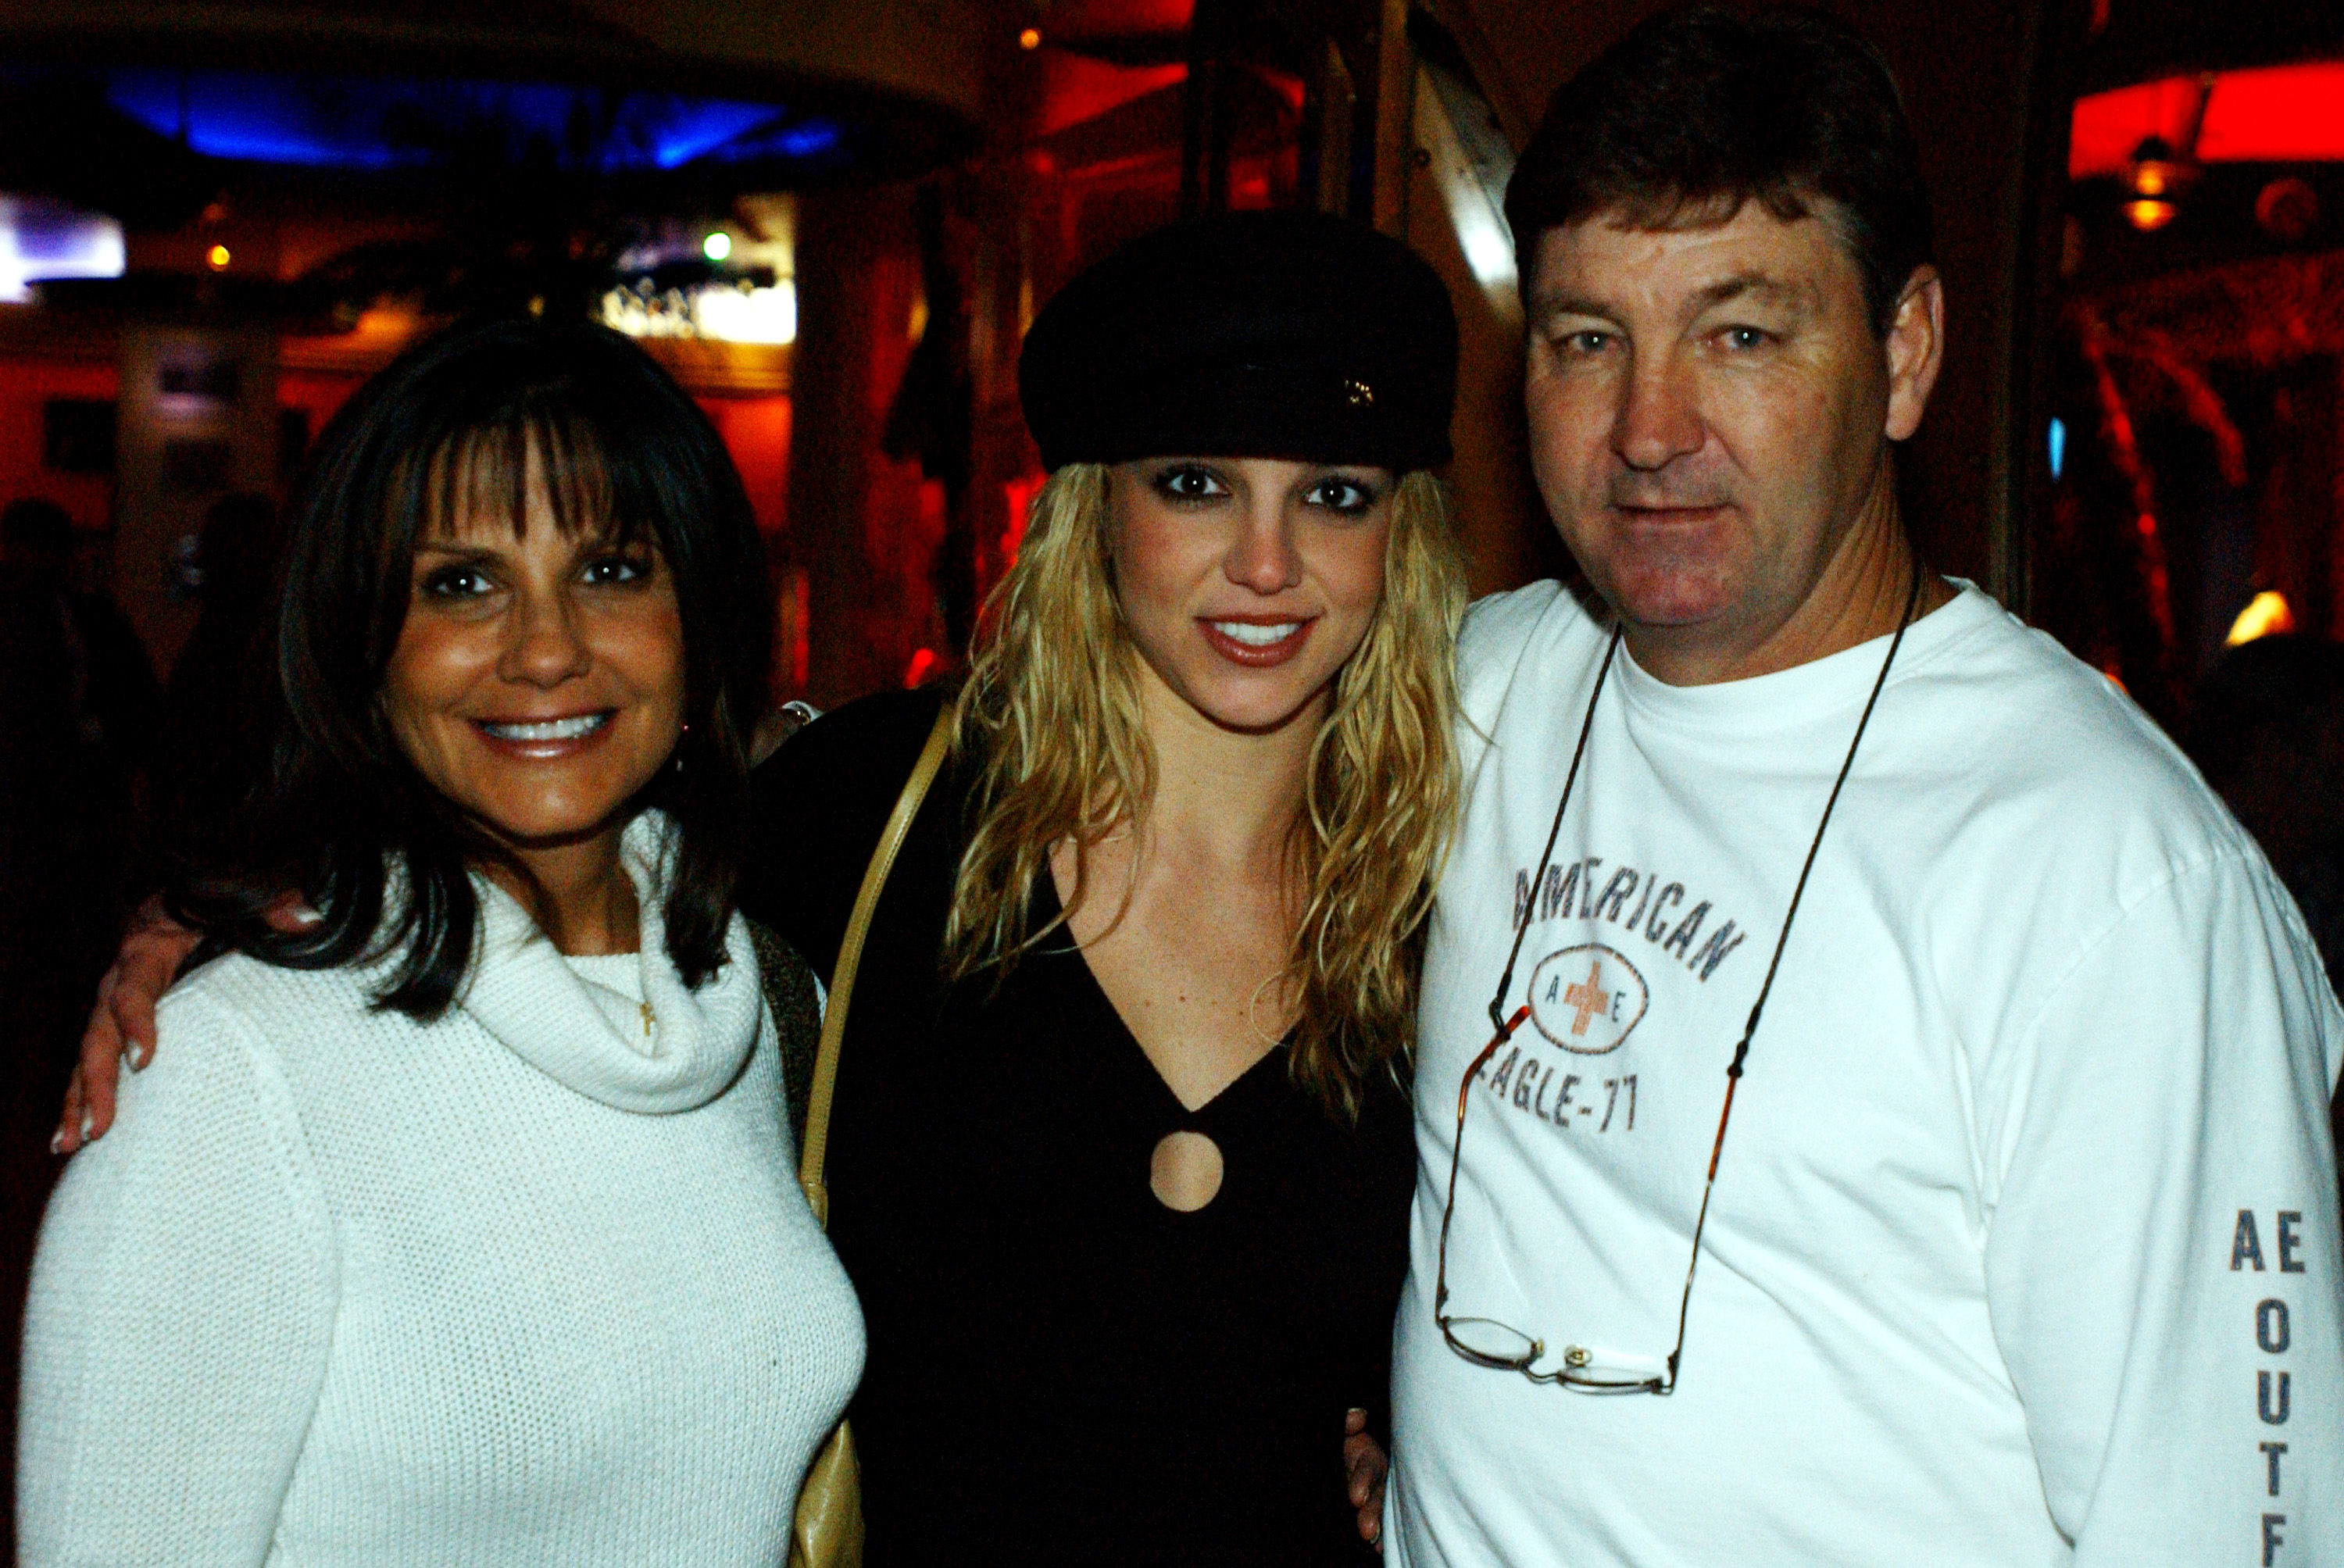 Britney Spears at Planet Hollywood, Las Vegas Party.